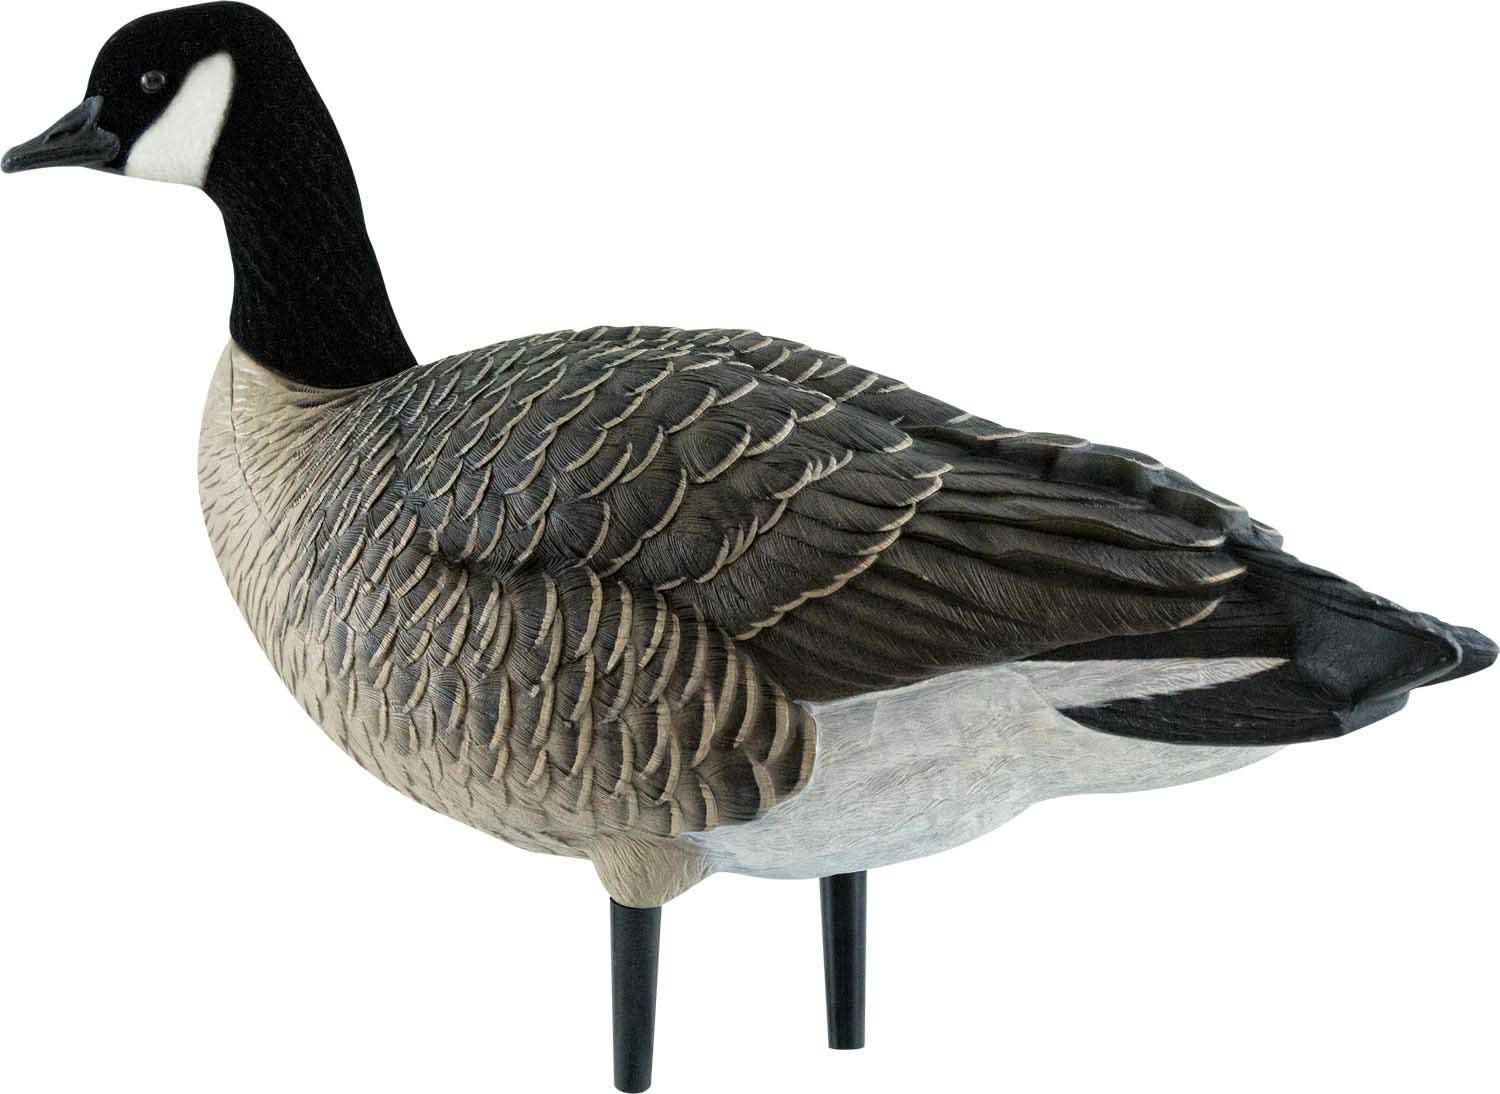 Avian-X AXF Outfitter Lesser Pack Fully Flocked Decoys, 12 Pack with Slotted Decoy Bag_4.jpg